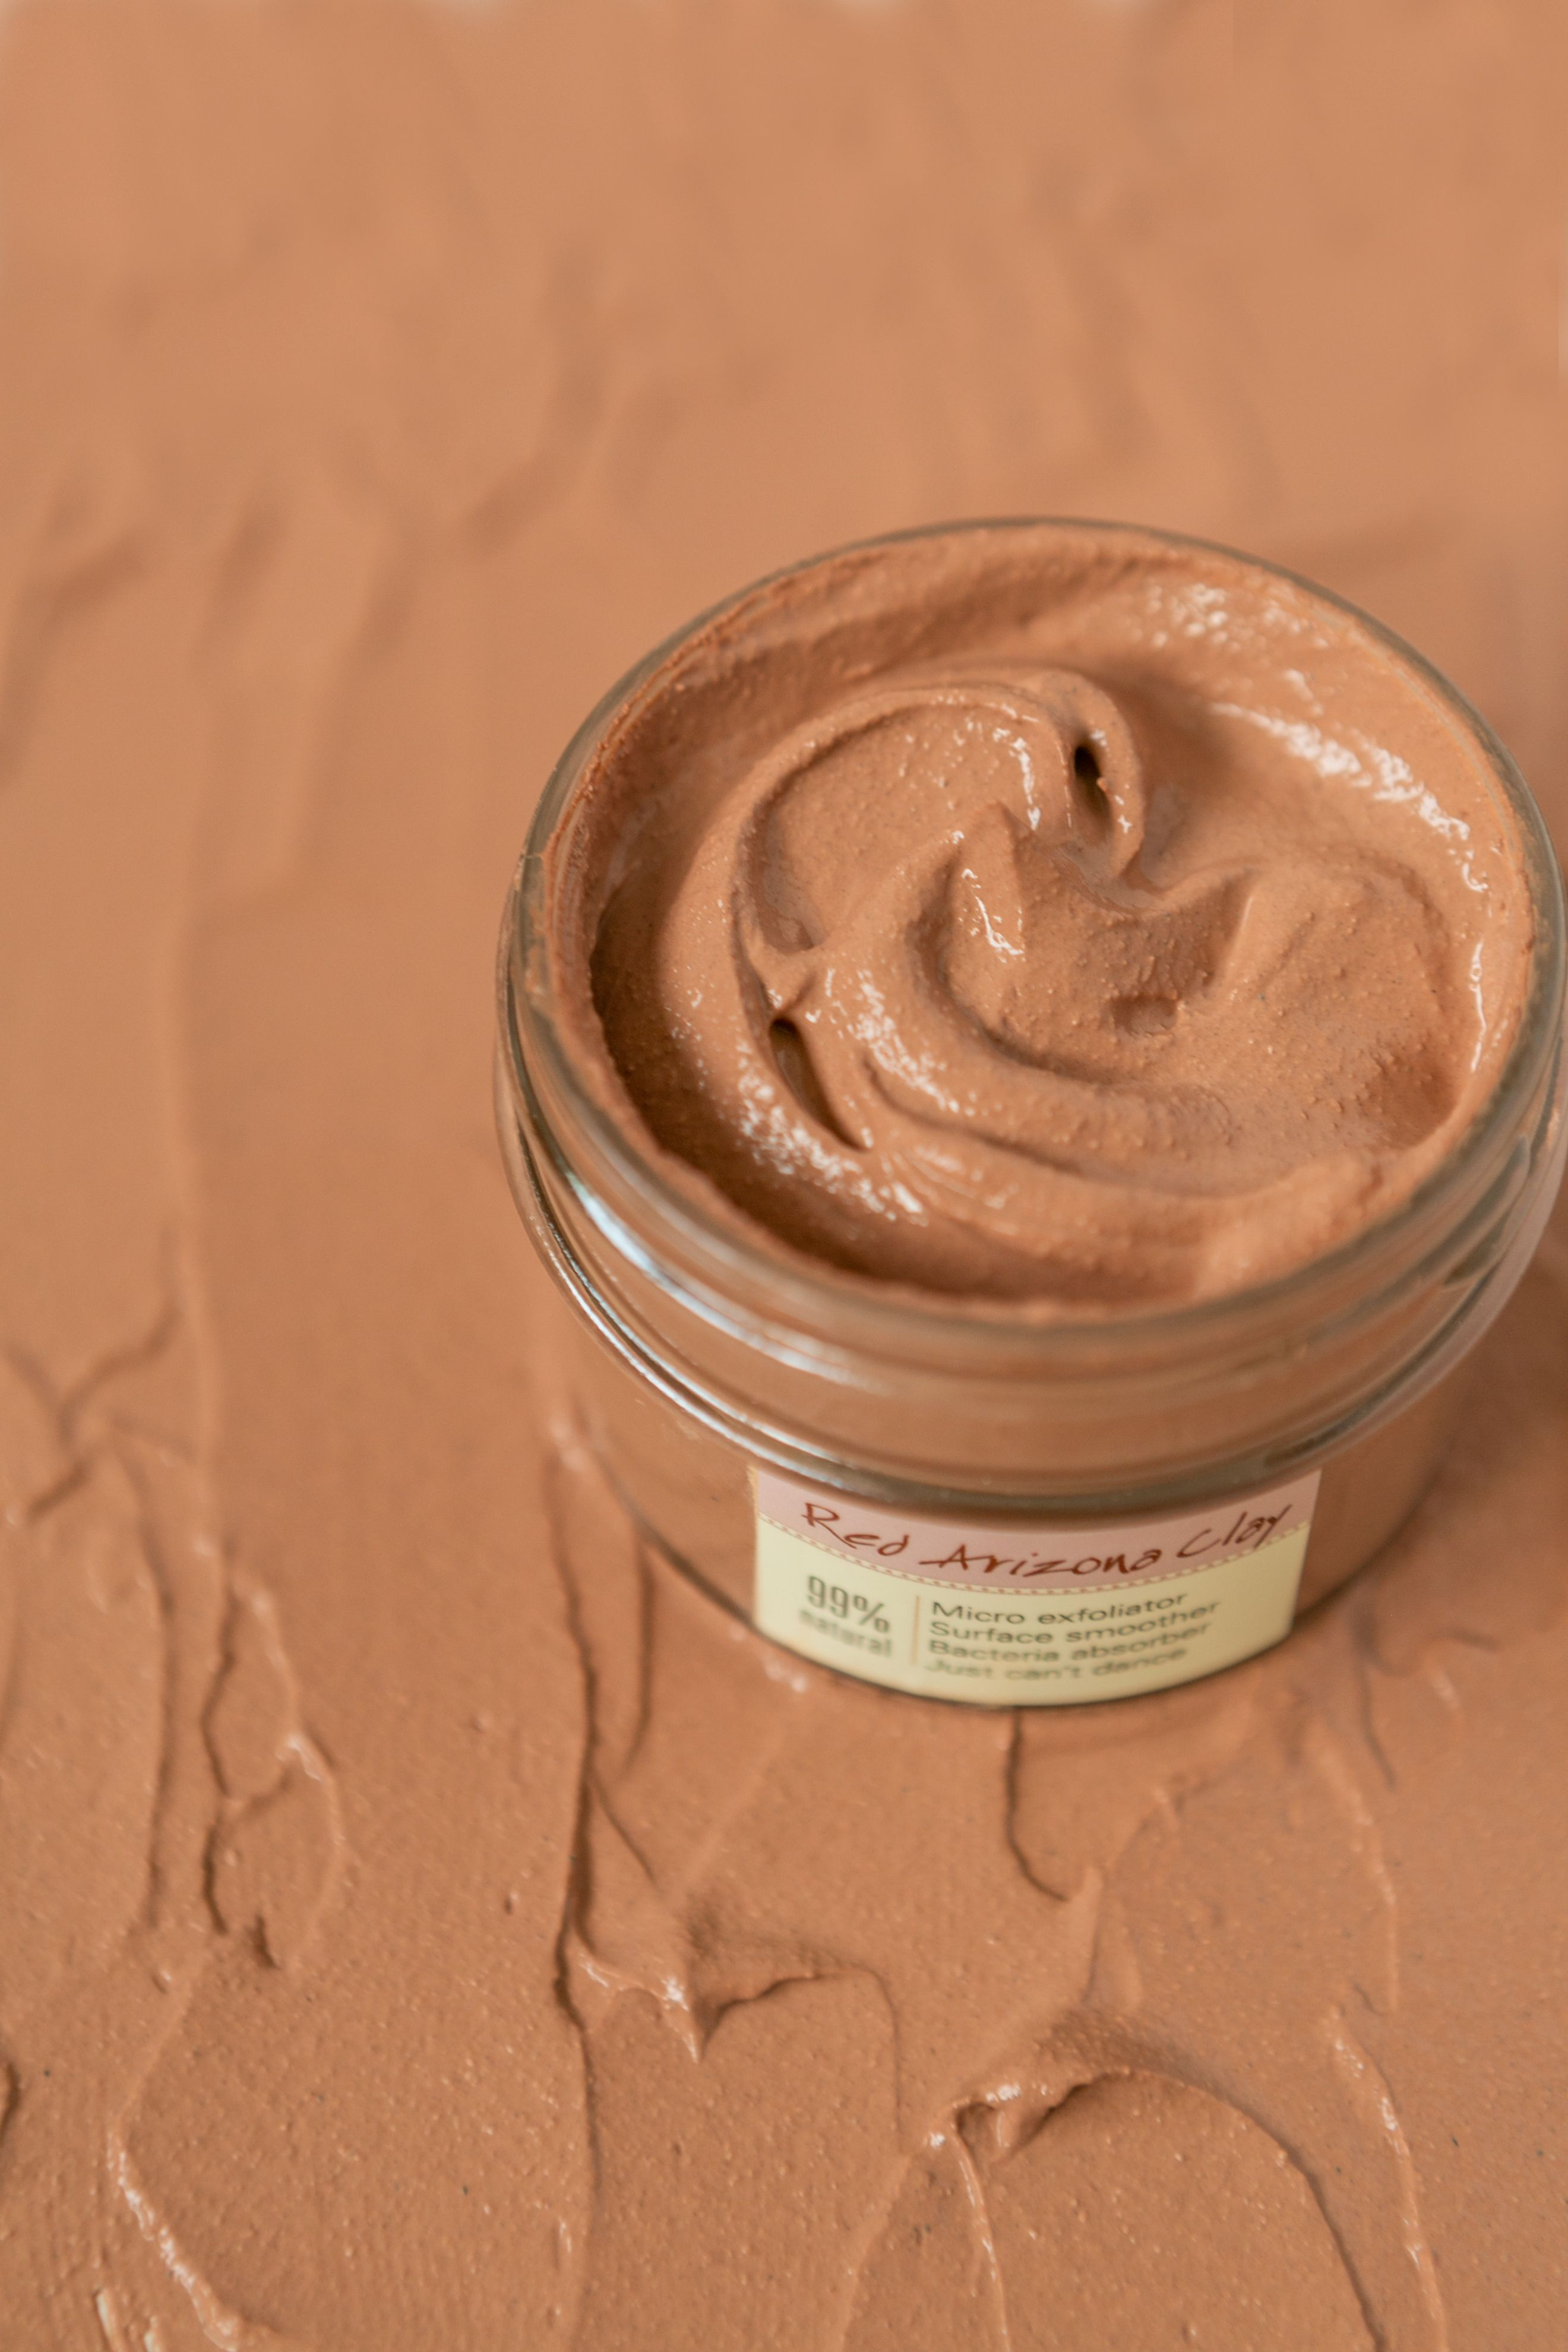 Sand Your Ground® Clarifying Mud Exfoliation Mask in 2020